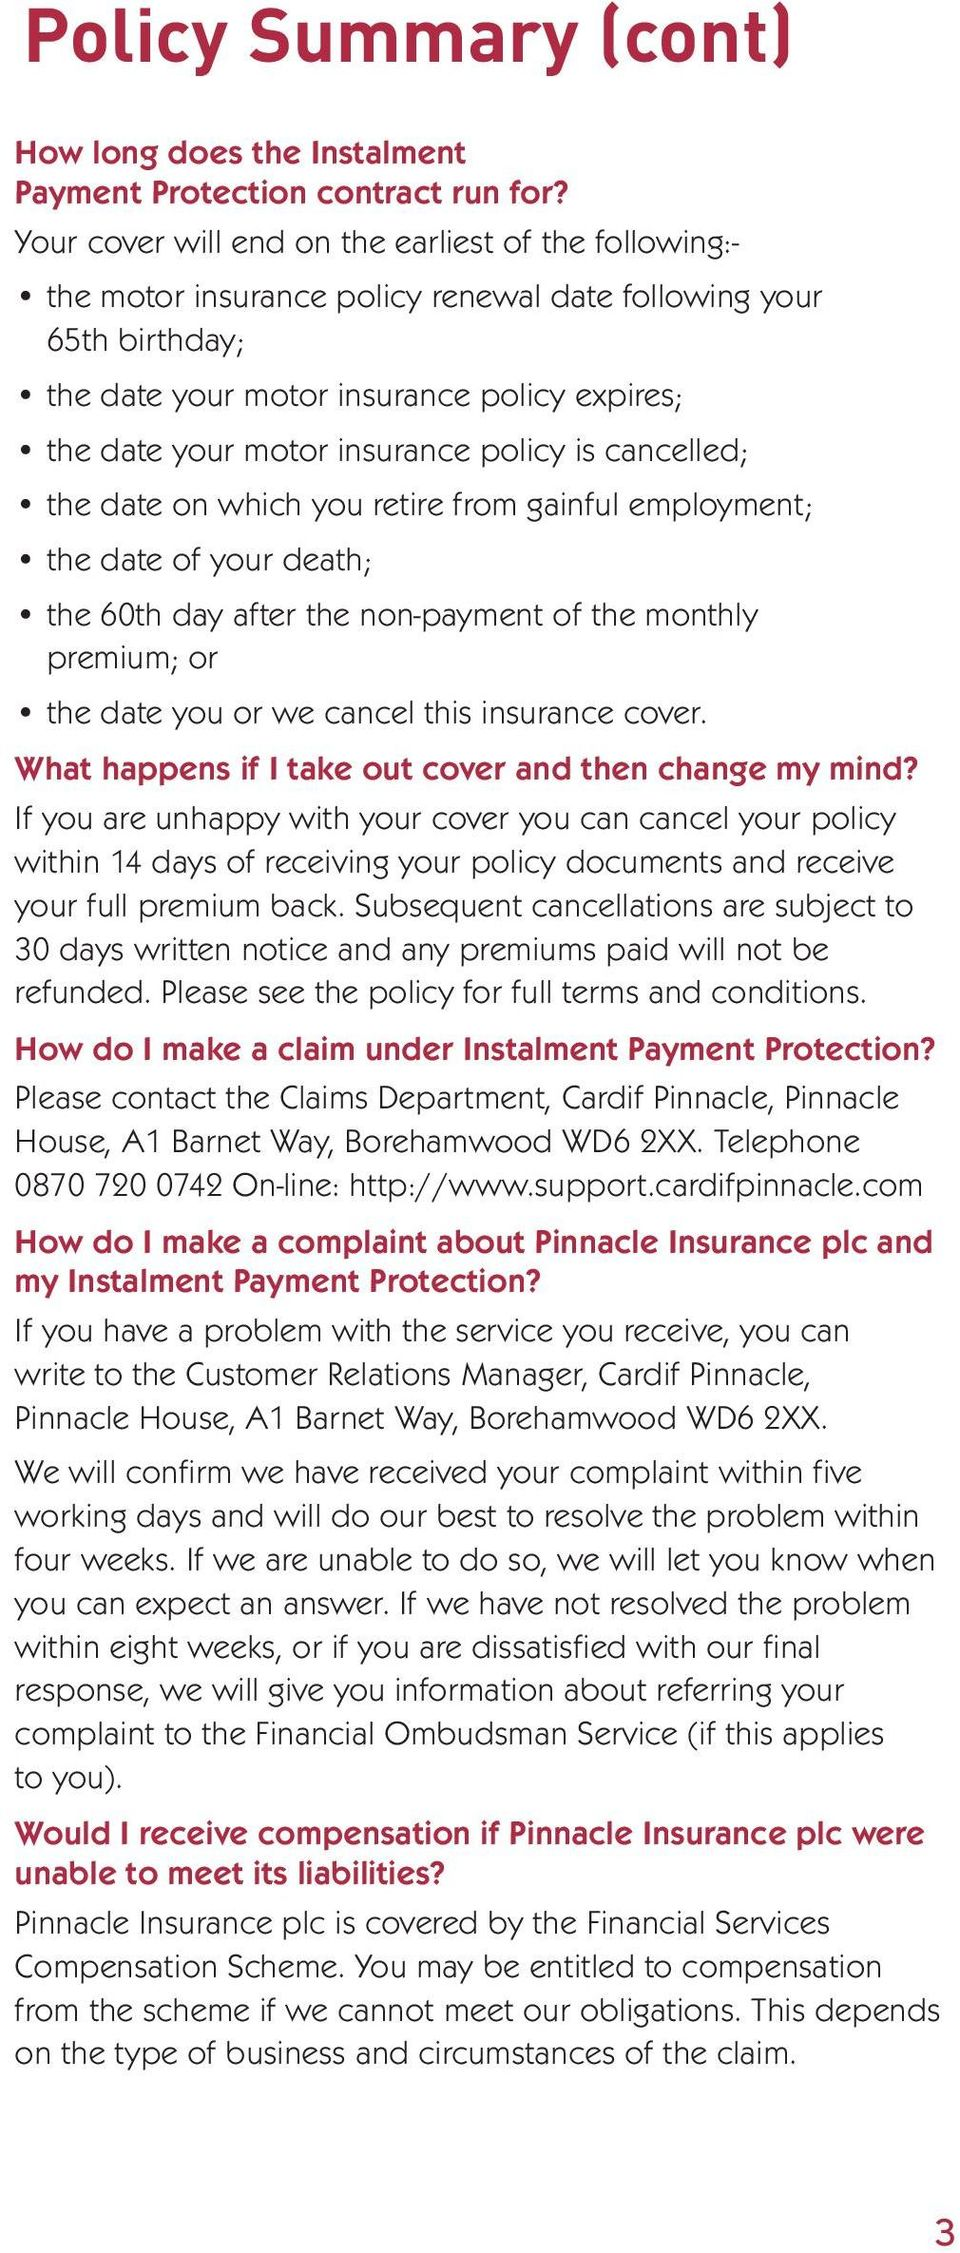 insurance policy is cancelled; the date on which you retire from gainful employment; the date of your death; the 60th day after the non-payment of the monthly premium; or the date you or we cancel